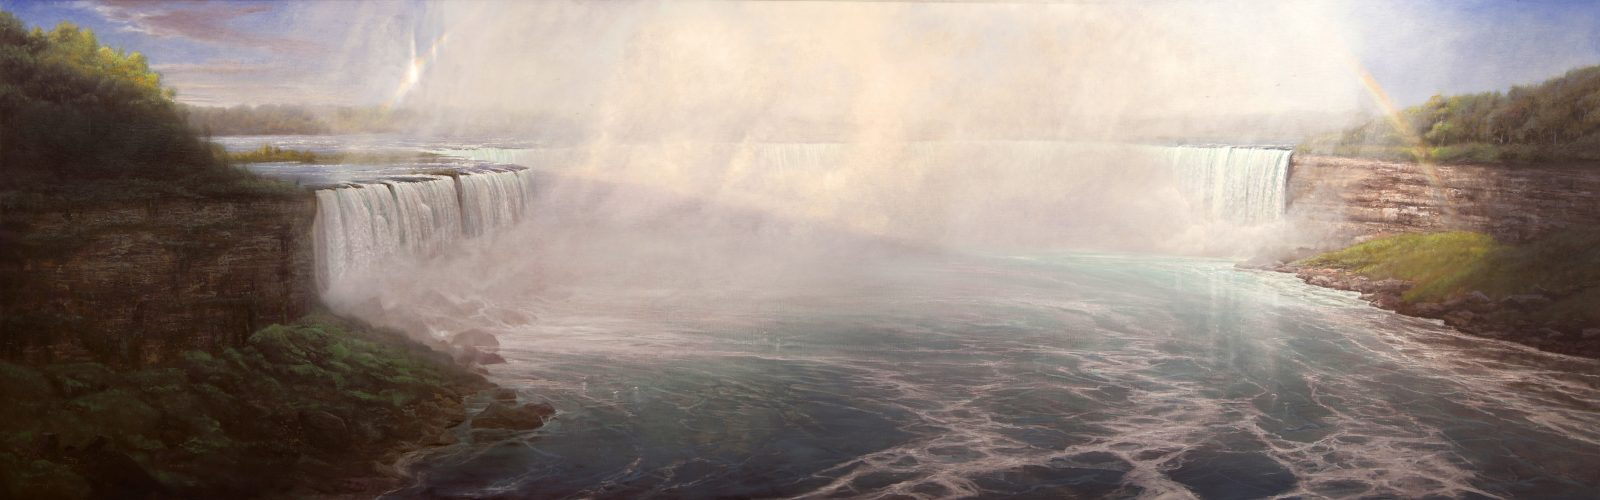 "Thomas Kegler's painting ""Niagara, Psalms 84:11"" is on view in Niagara University's Castellani Art Museum."